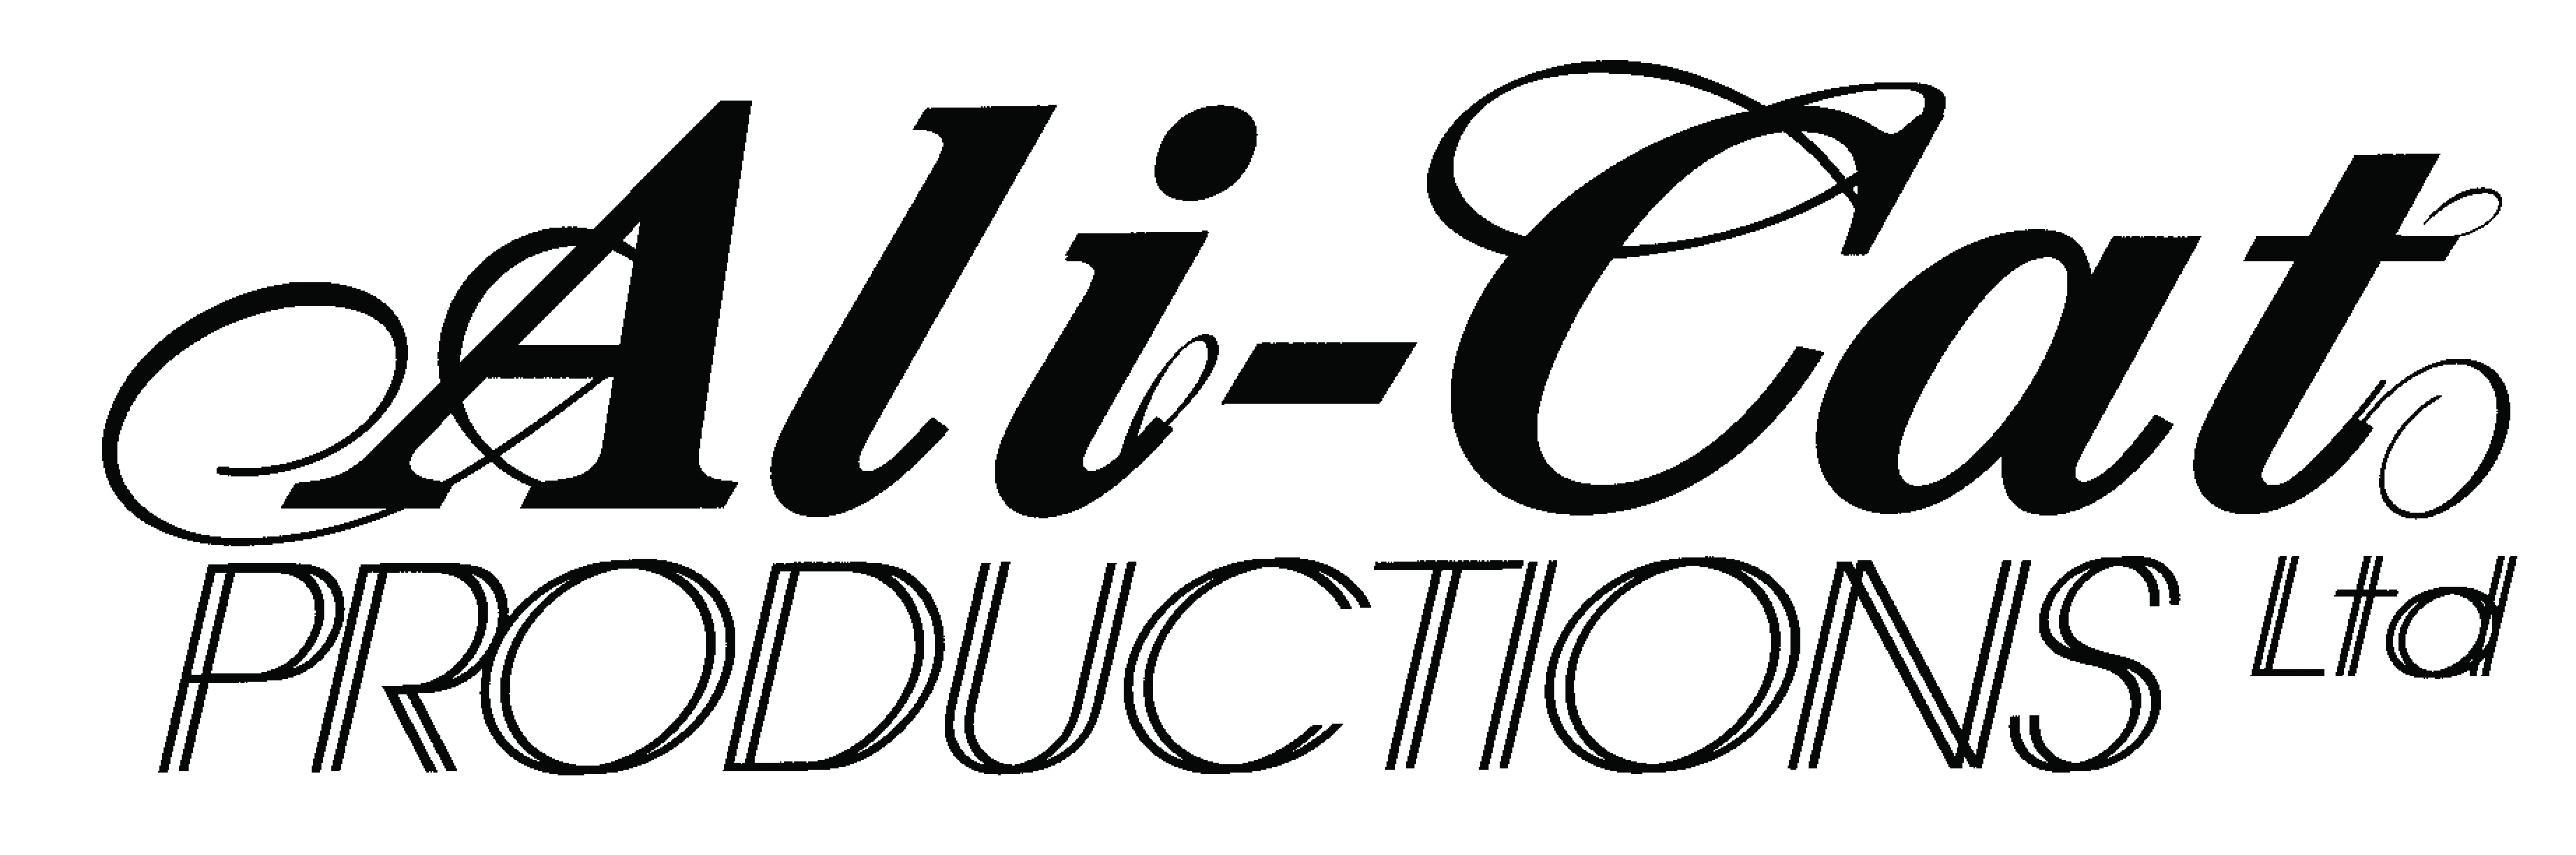 Ali Cat productions_logo